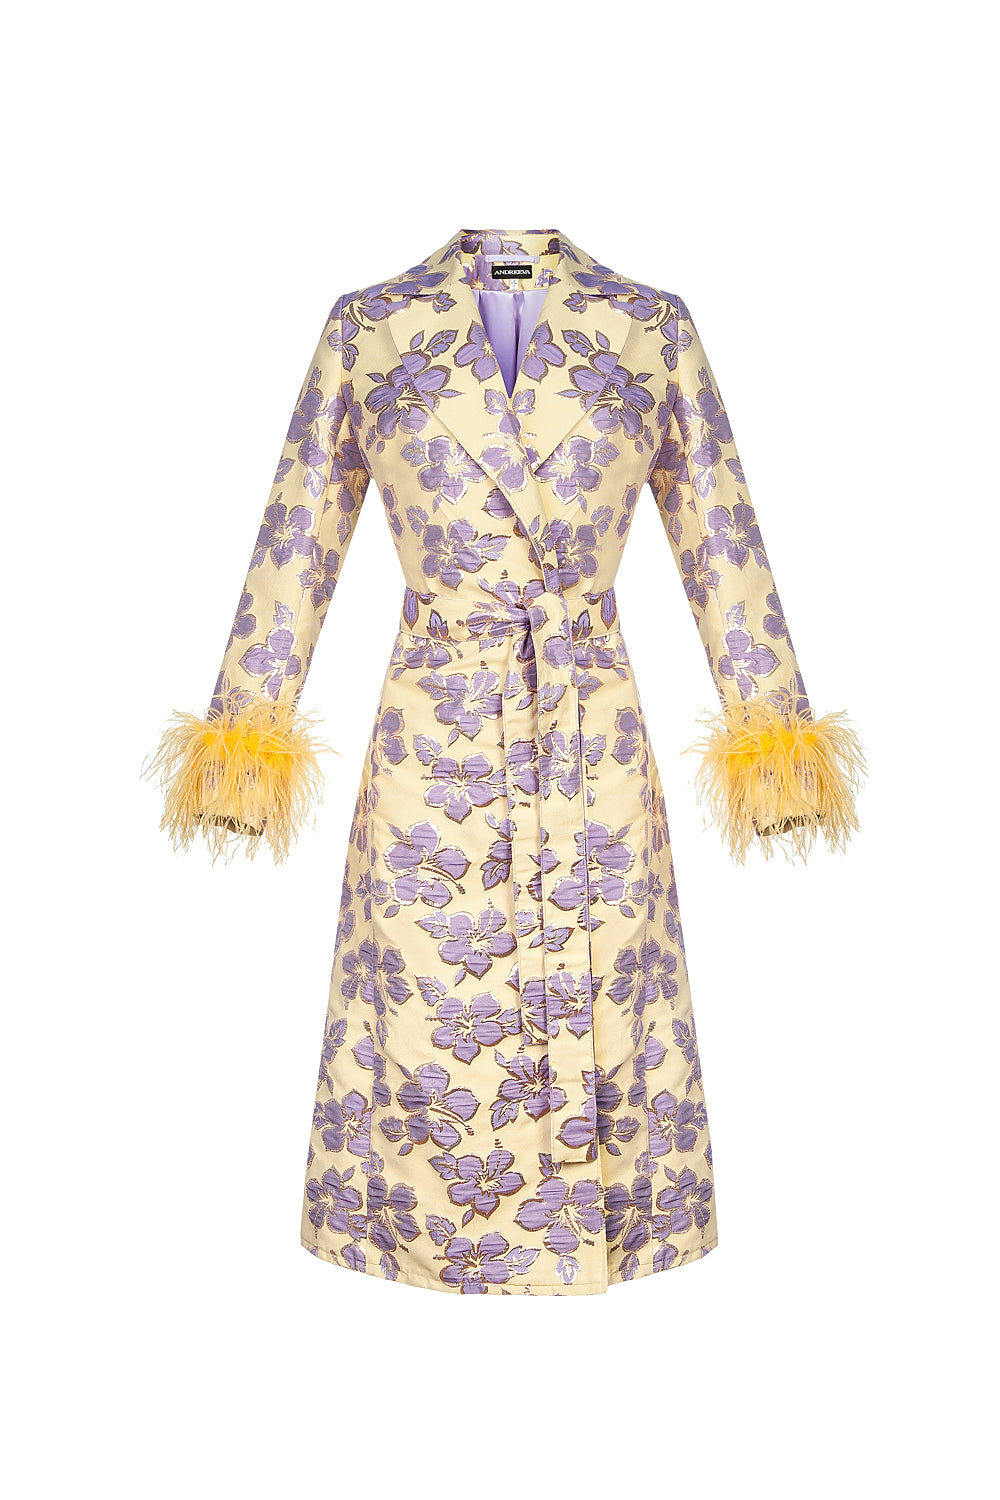 Vanilla jacquard coat with feathers details